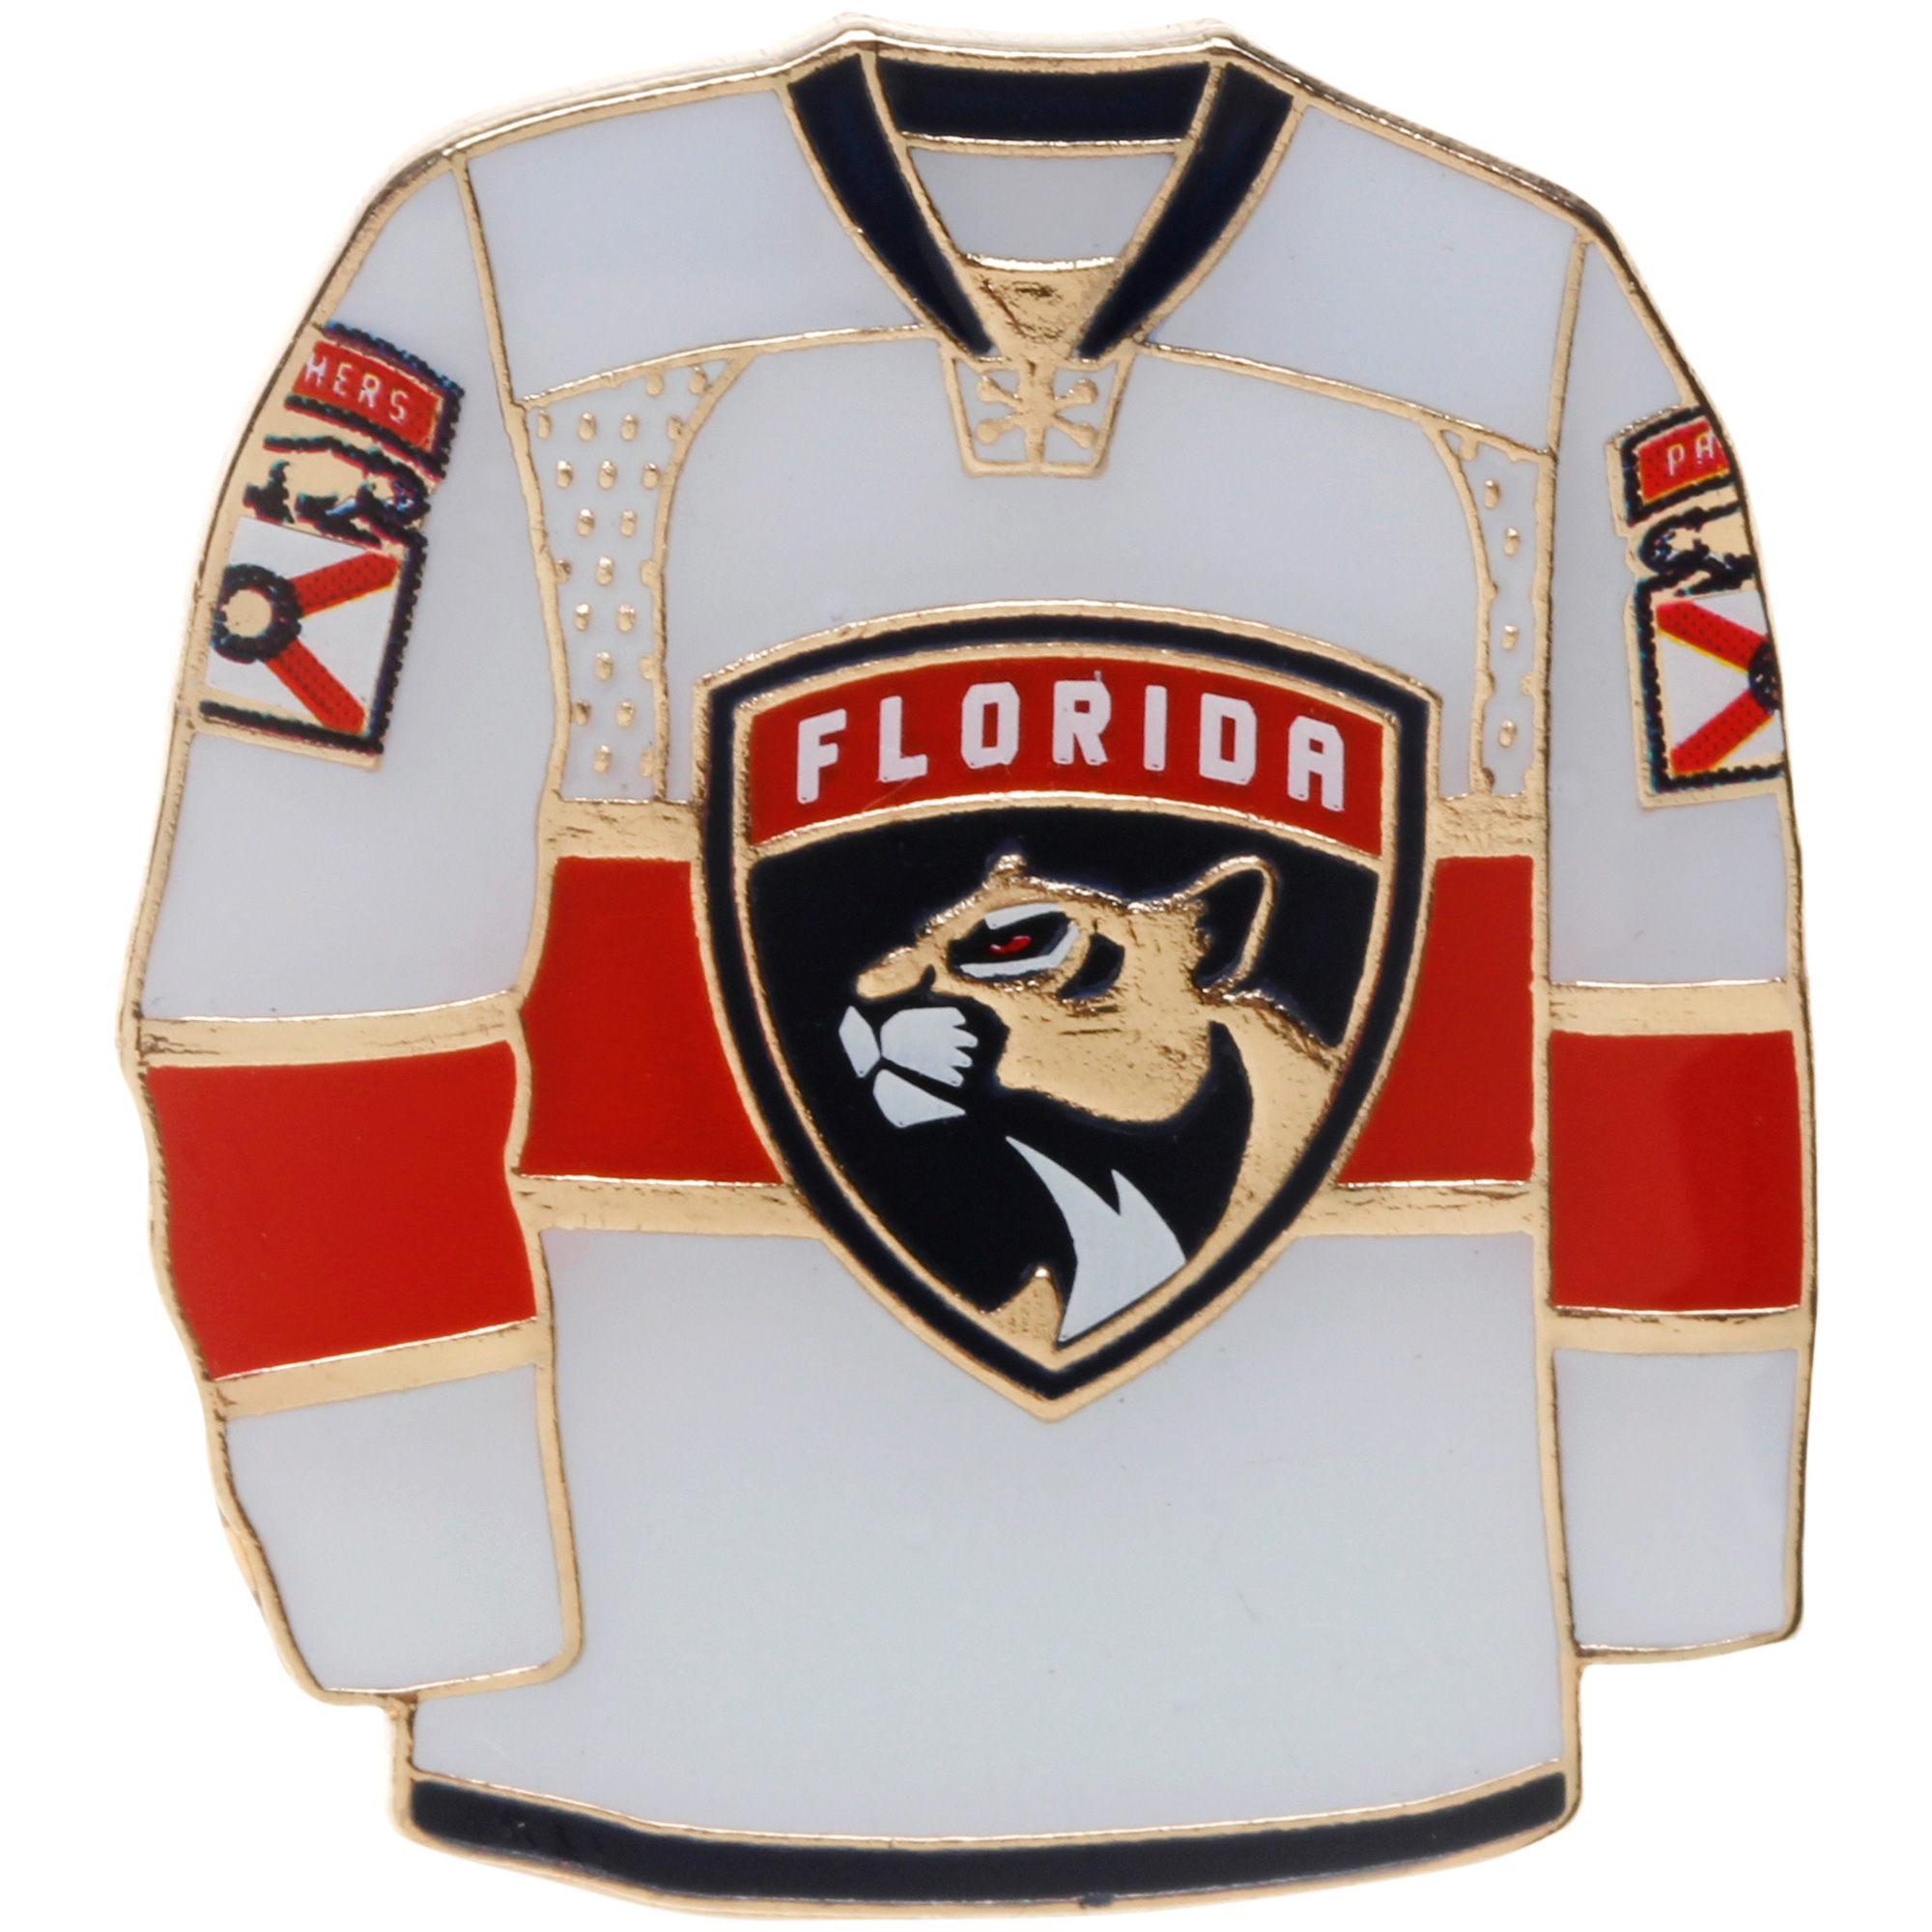 "Florida Panthers 1"" x 1"" Jersey Pin - White - No Size"